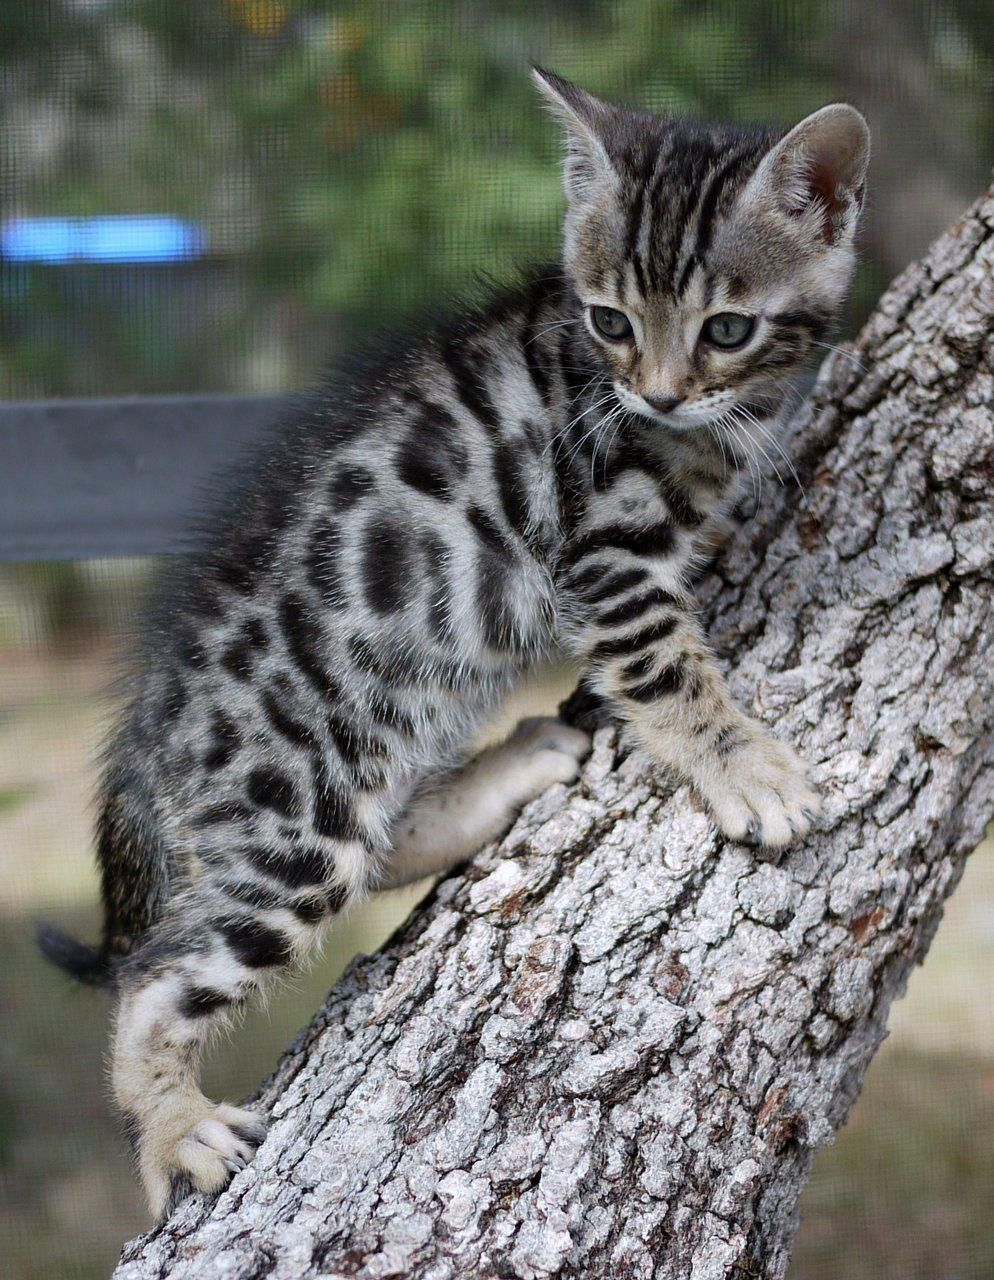 Funny Videos Funny Kids Funny Animals Funny Videos Of People Falling Funny Jokes Funny Pranks Etc Bengal Cat Cats Kittens Cutest